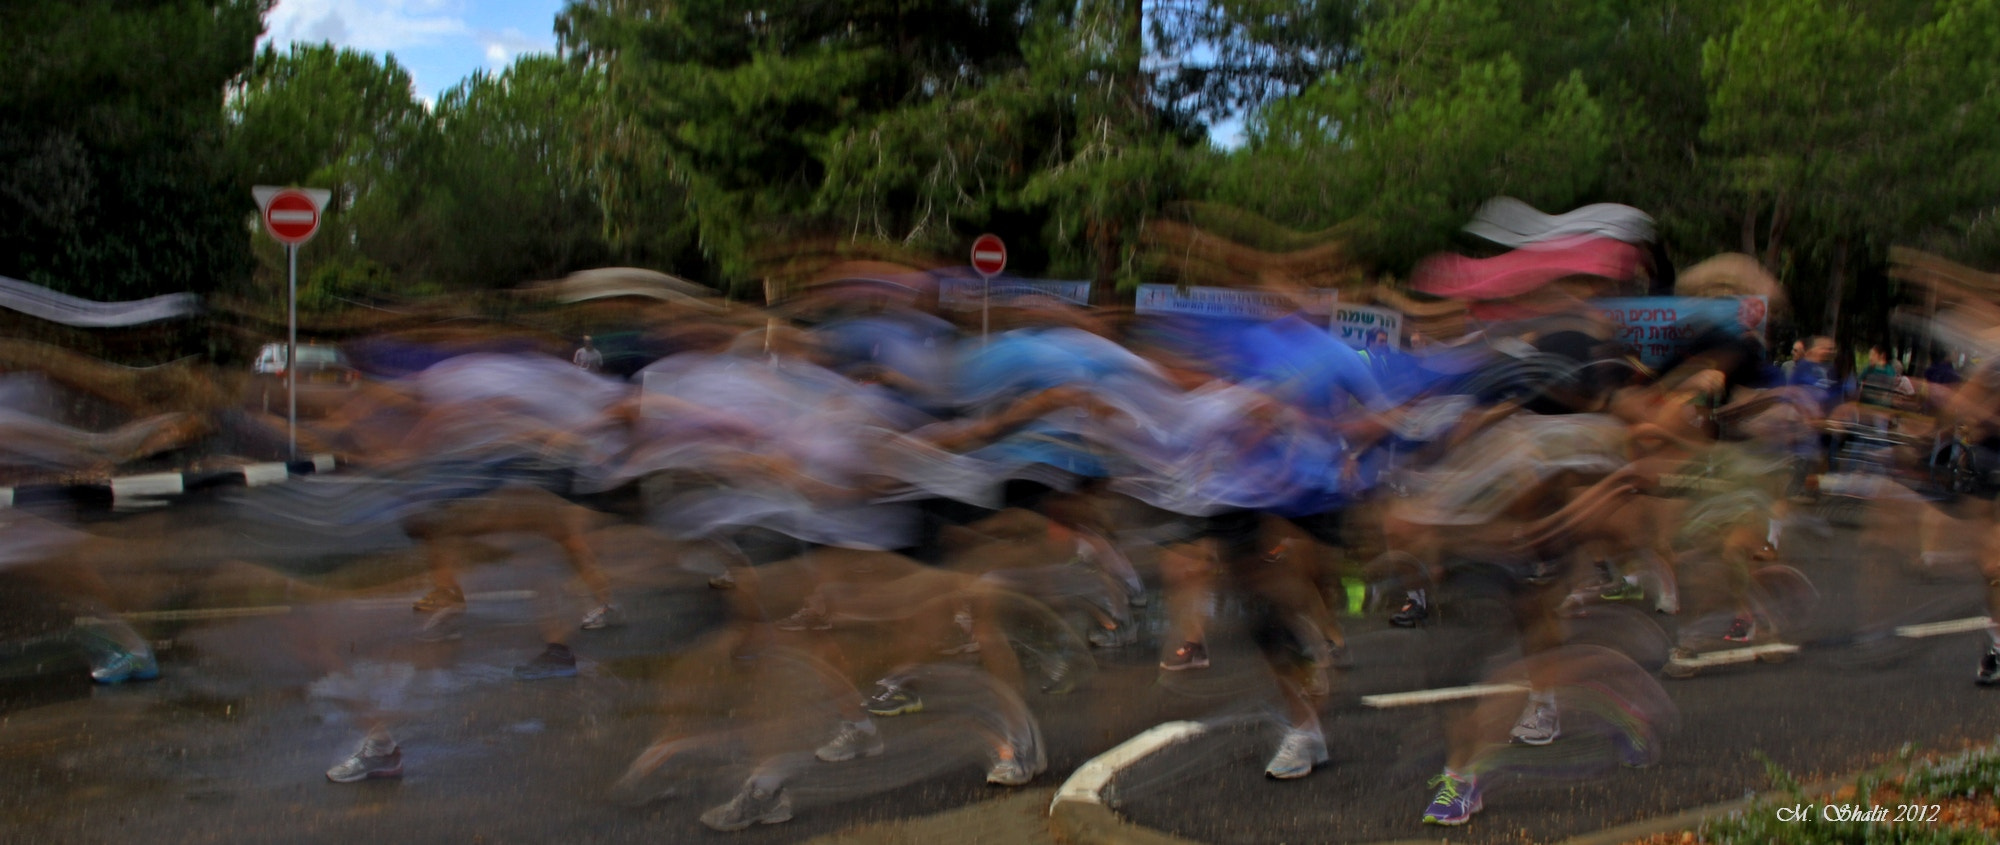 Photograph the runers. by Moshe Shalit on 500px